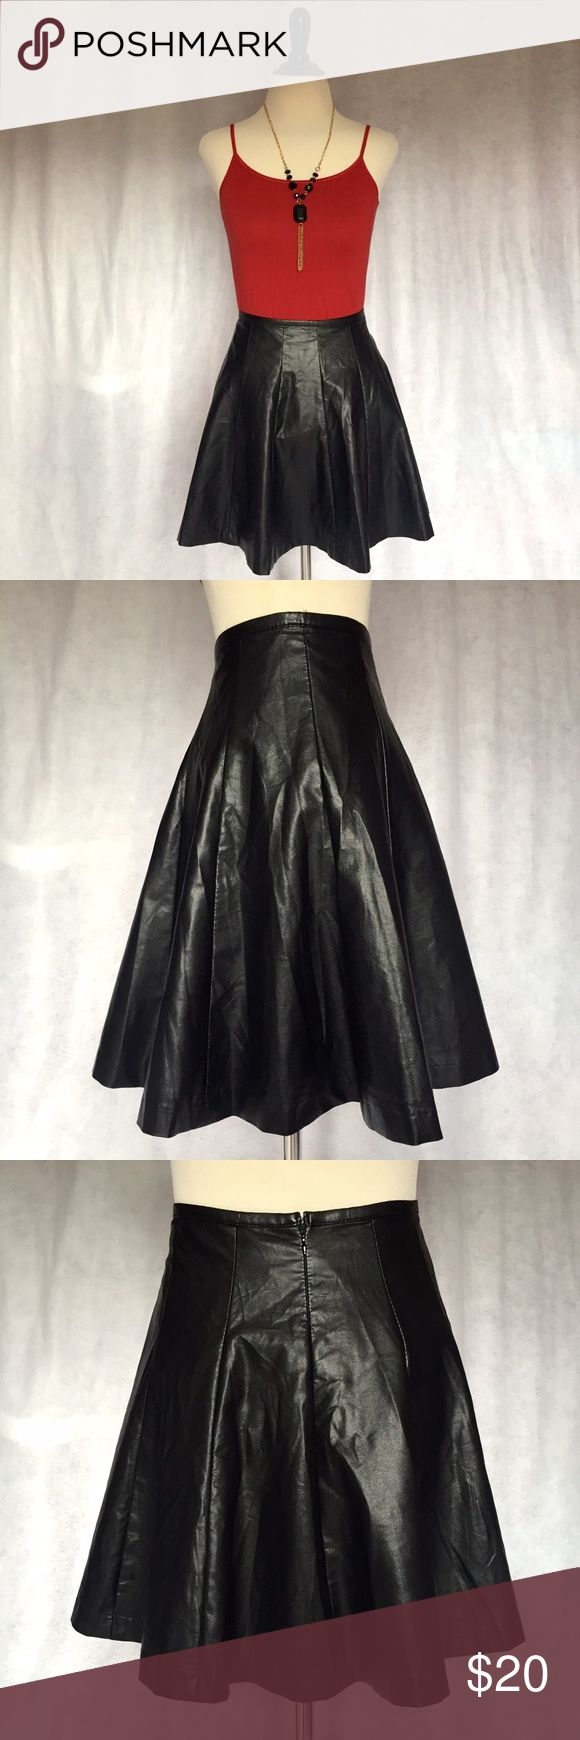 Forever 21 S Black Vegan Faux Leather Skater Skirt This Forever 21 vegan leather skirt is perfect for fall! Features non-elastic high waist, panels, faux leather, skater style, and mini length. Solid black and fully lined. Zips and hooks down back. Pair with fishnets for a rockin' look! Marked a size S. Measurements upon request. Listing is for skirt only; other items NFS.  #winter #fall #vegetarian #schoolgirl #goth #punk #rocker #uniform #kawaii #japan #grunge #edgy #80s #90s #clueless…